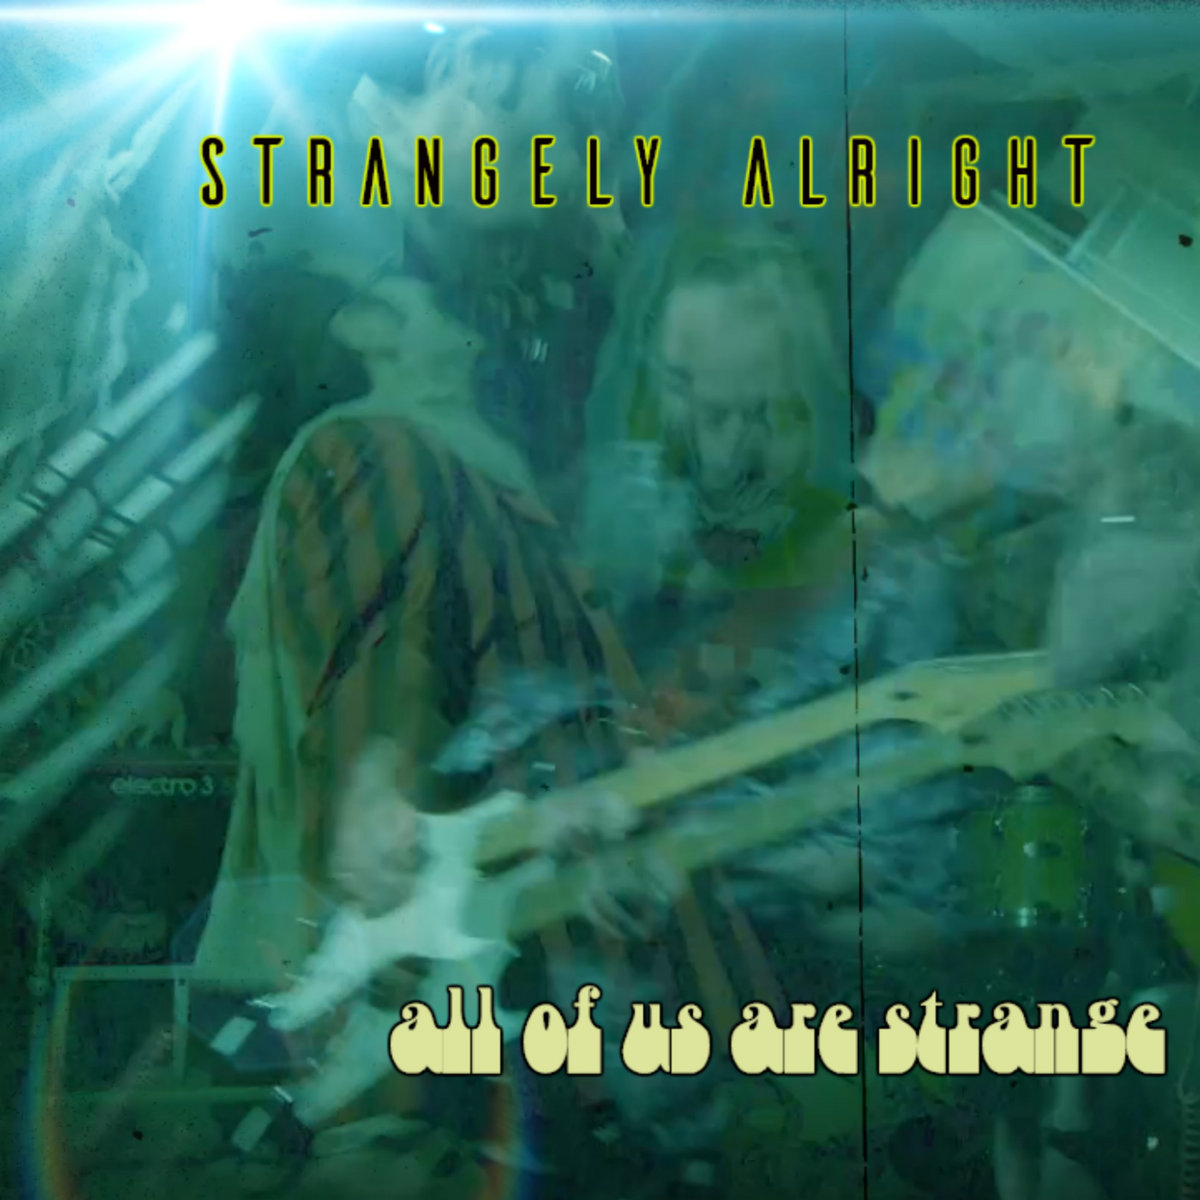 All Of Us Are Strange by Strangely Alright